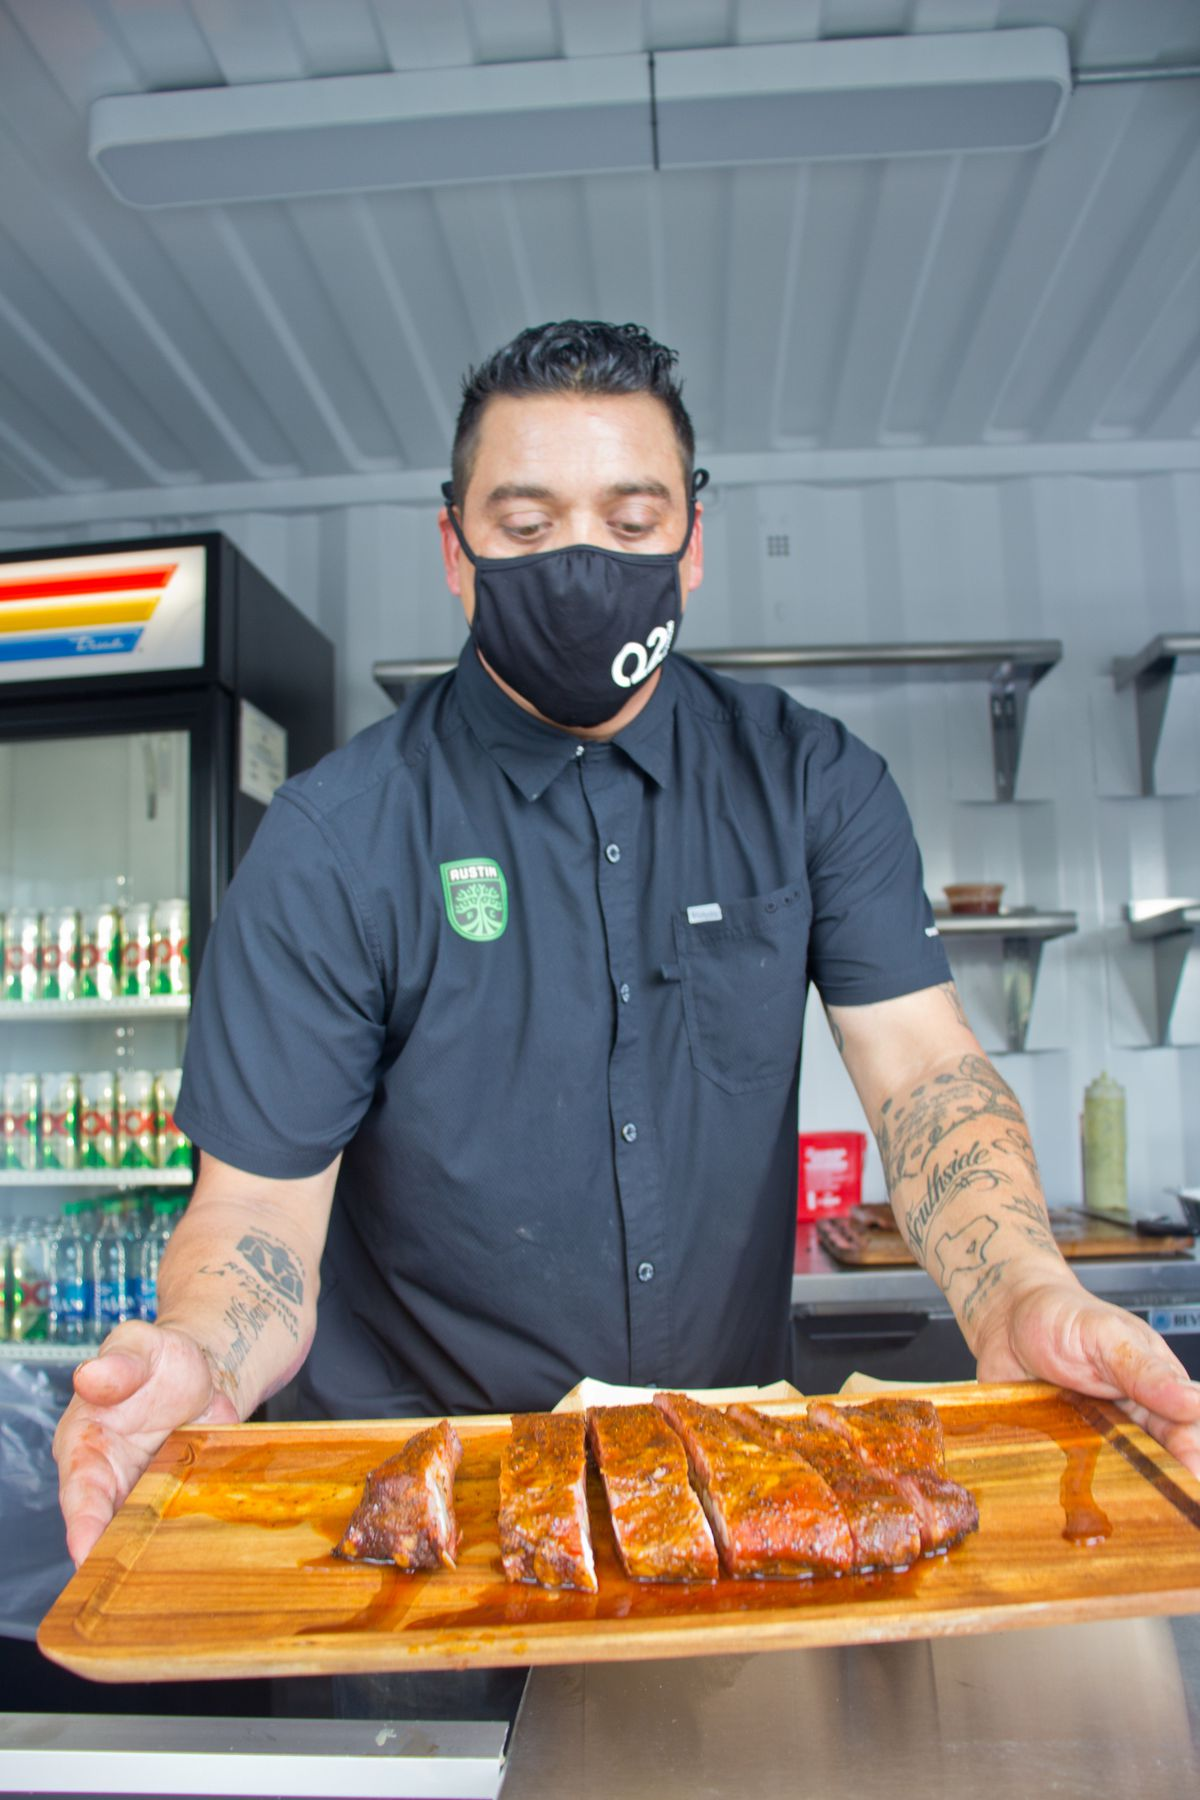 A man in a black shirt and black face mask holding up a wooden board that contains sliced ribs